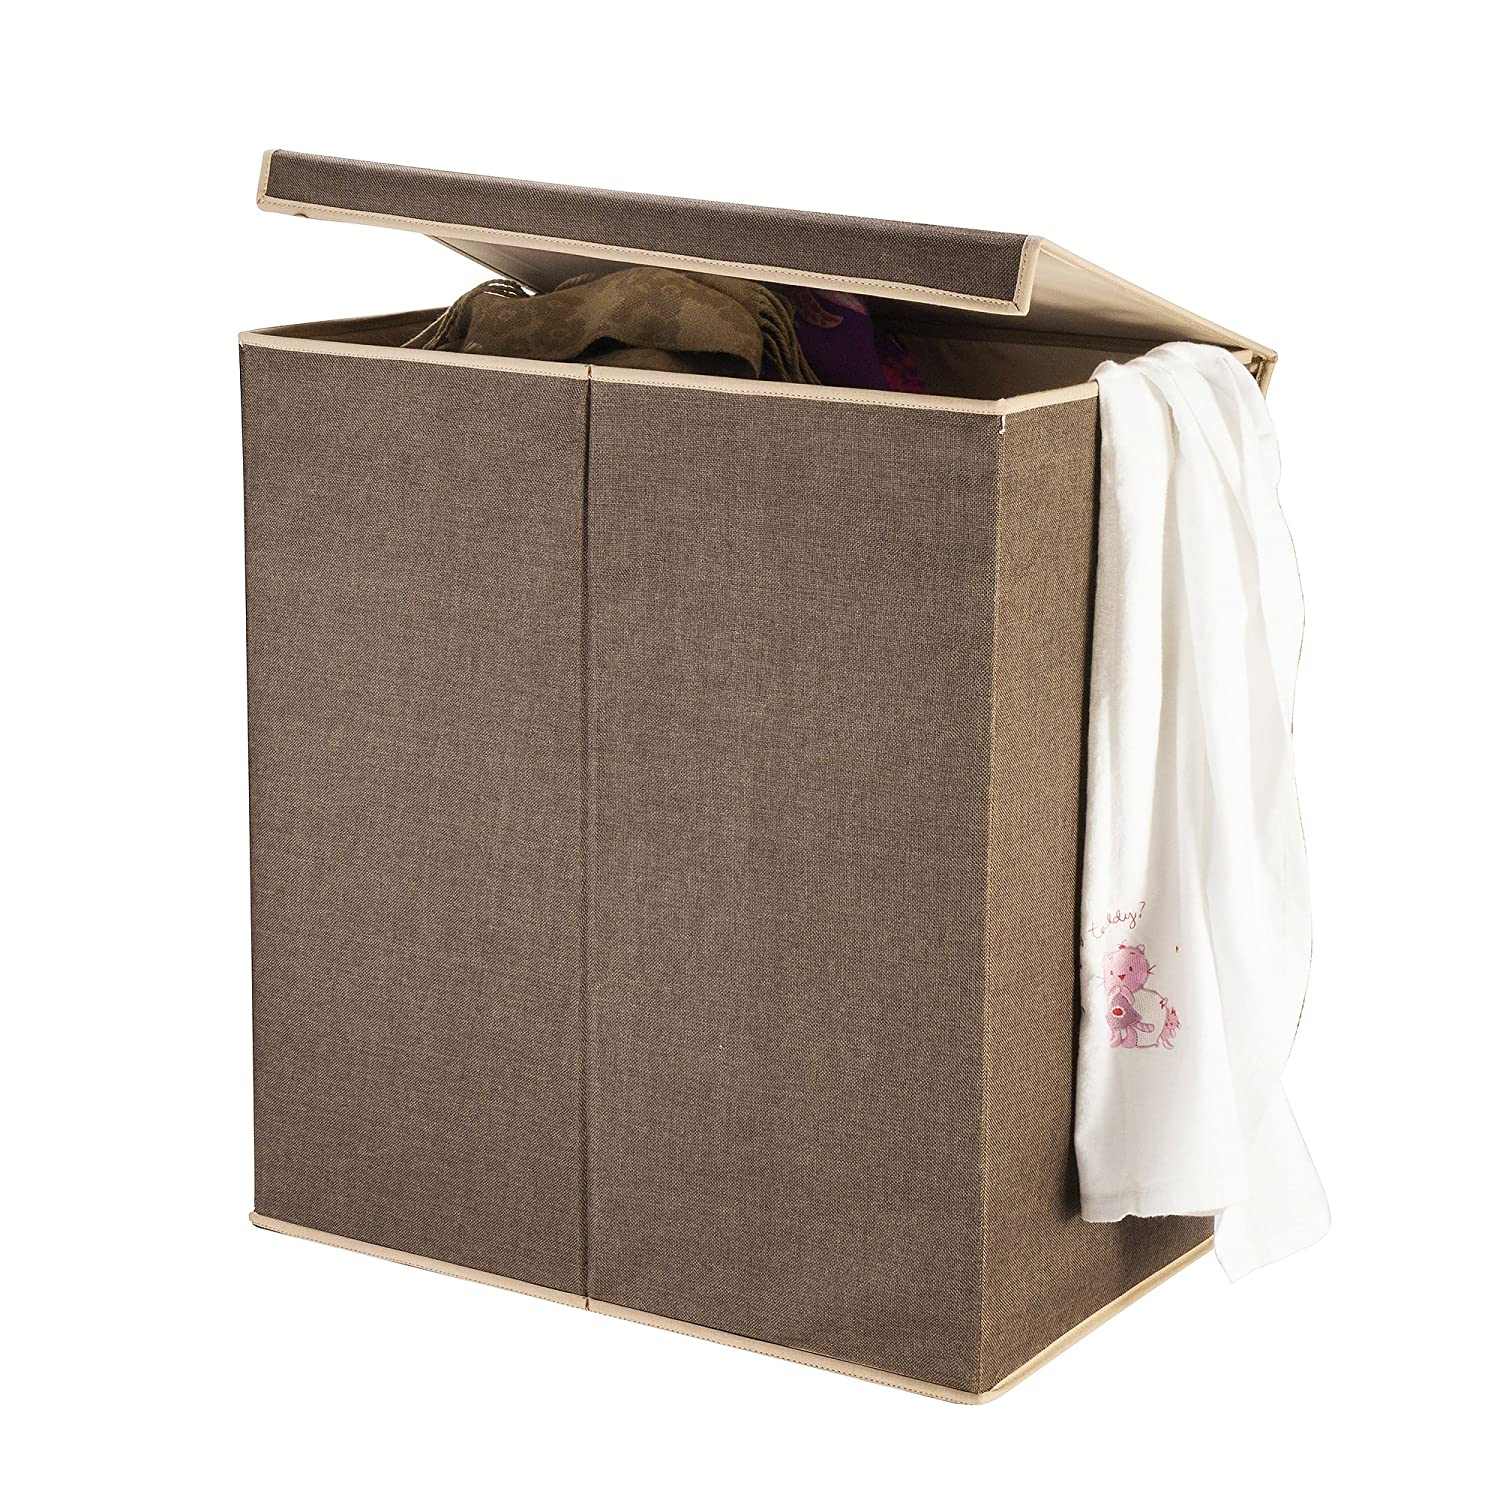 Villacera 83-DT5775 2 Compartment Laundry Hamper with Magnetic Lid